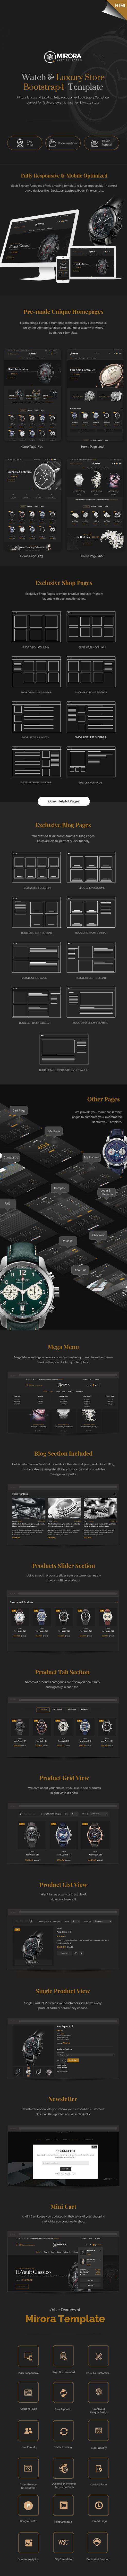 Mirora - Watch and Jewelry Store Bootstrap 4 Template - 1